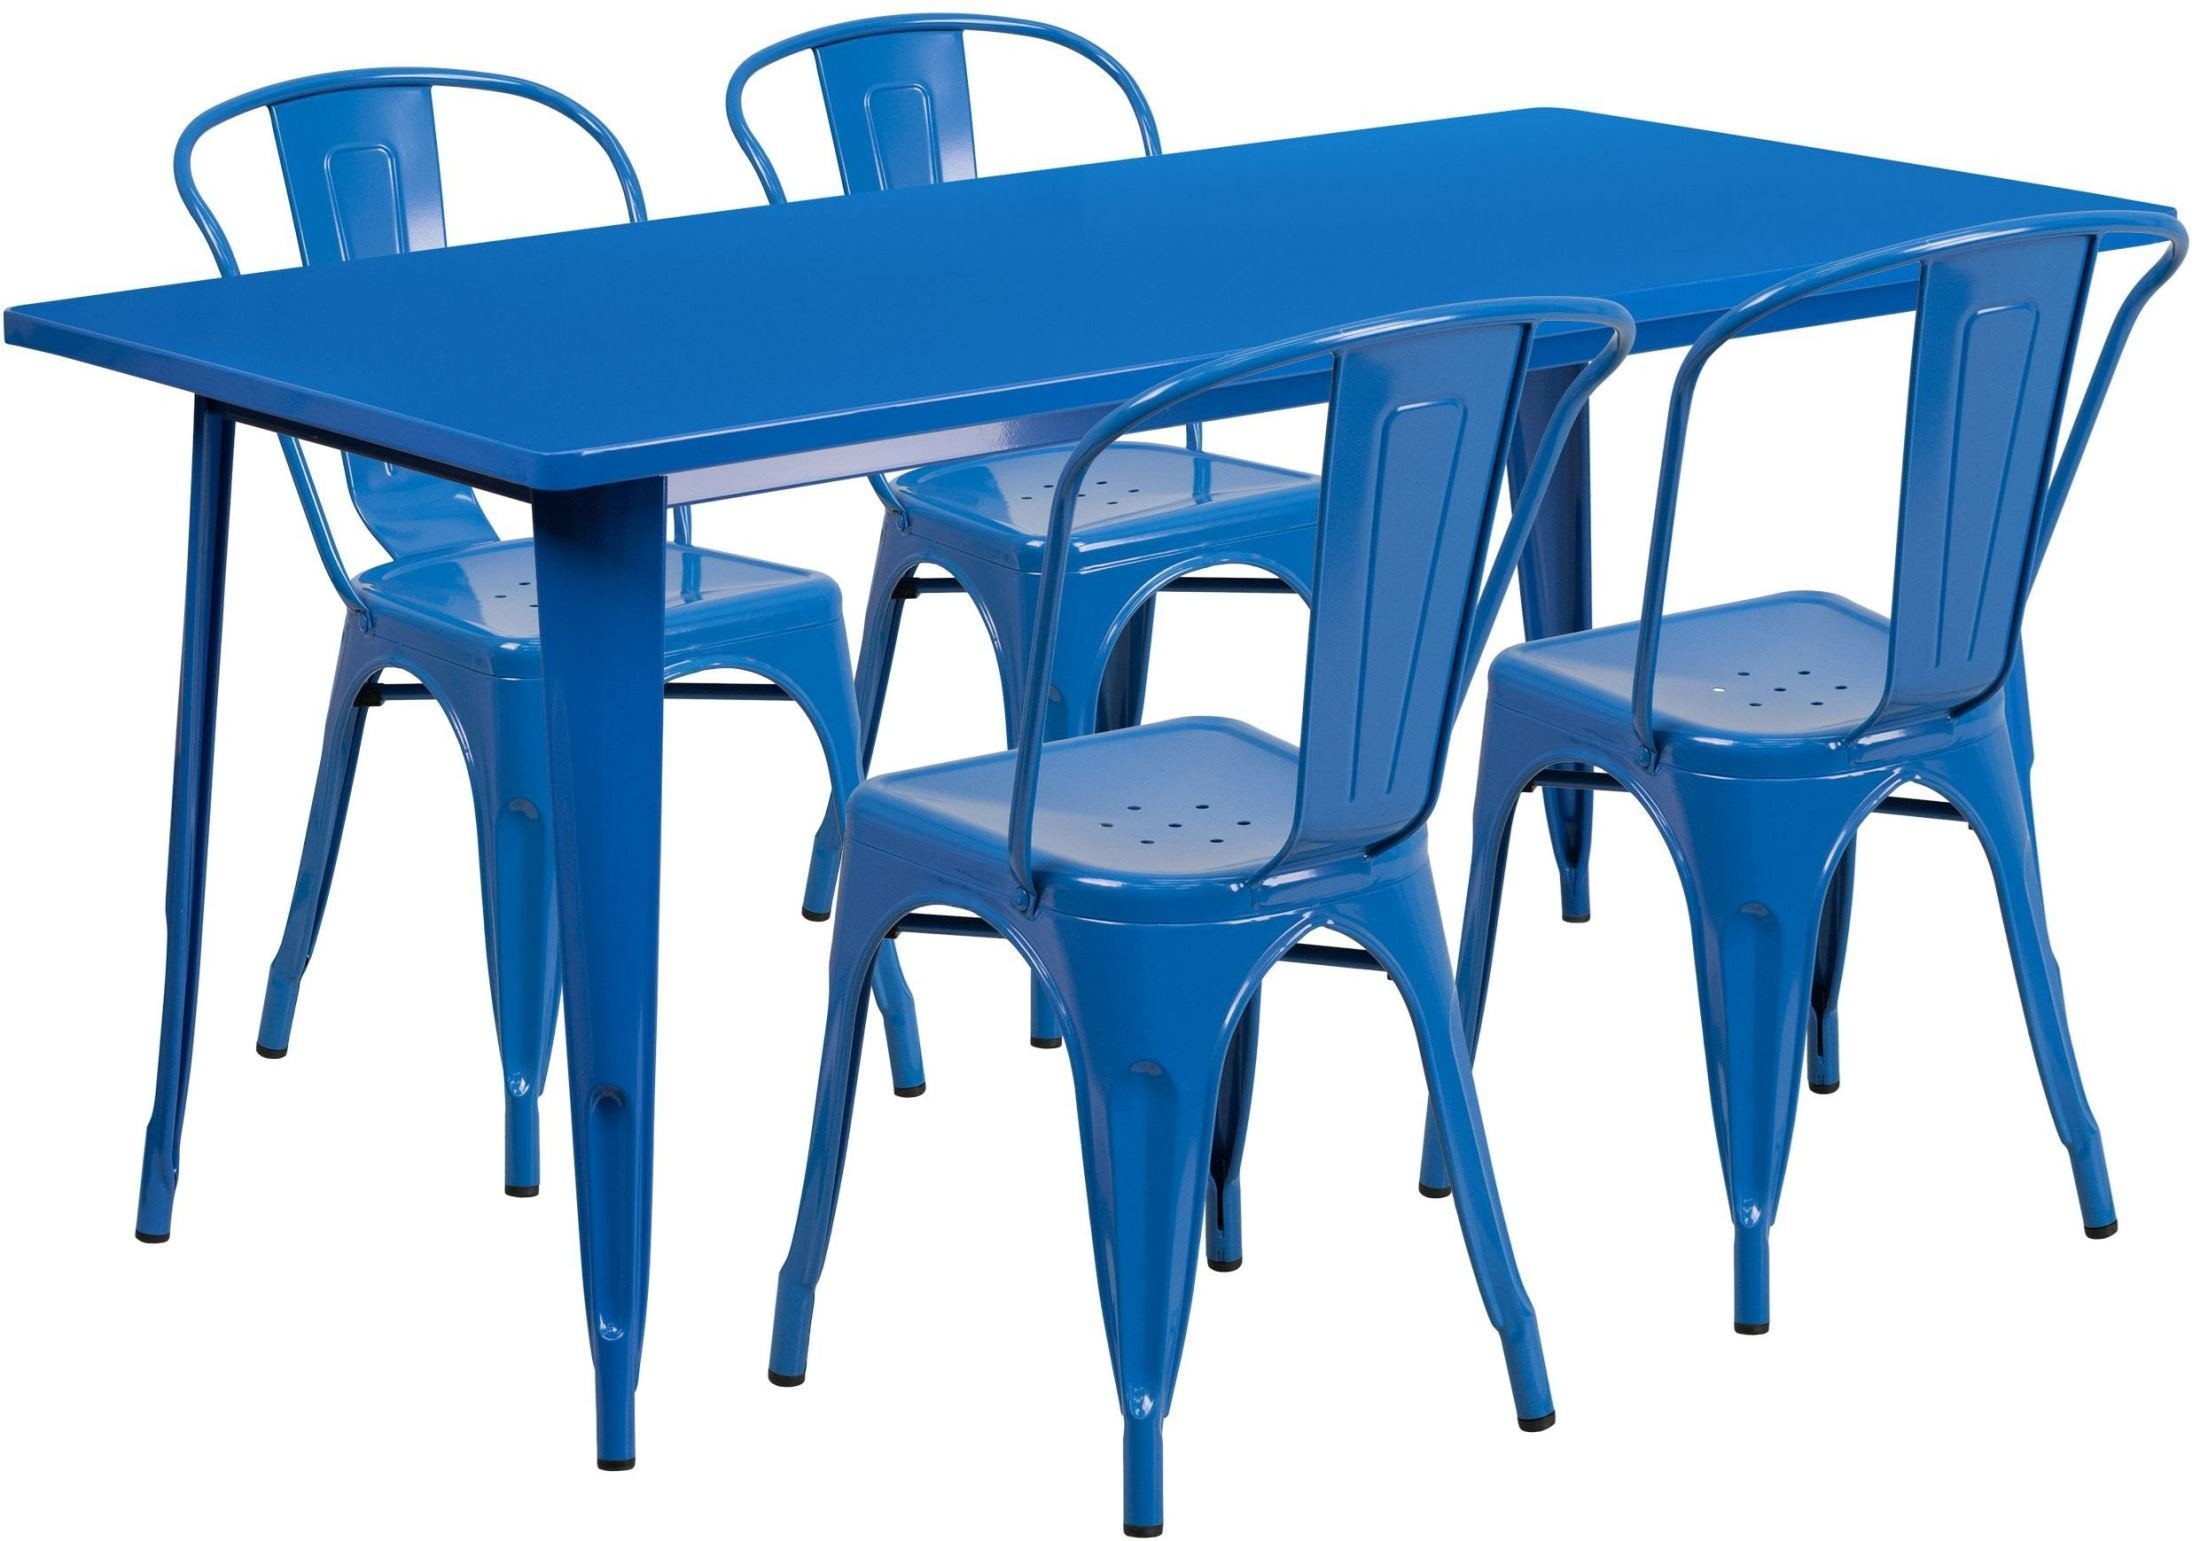 63inch rectangular blue indoor outdoor table set with 4 stack chairs